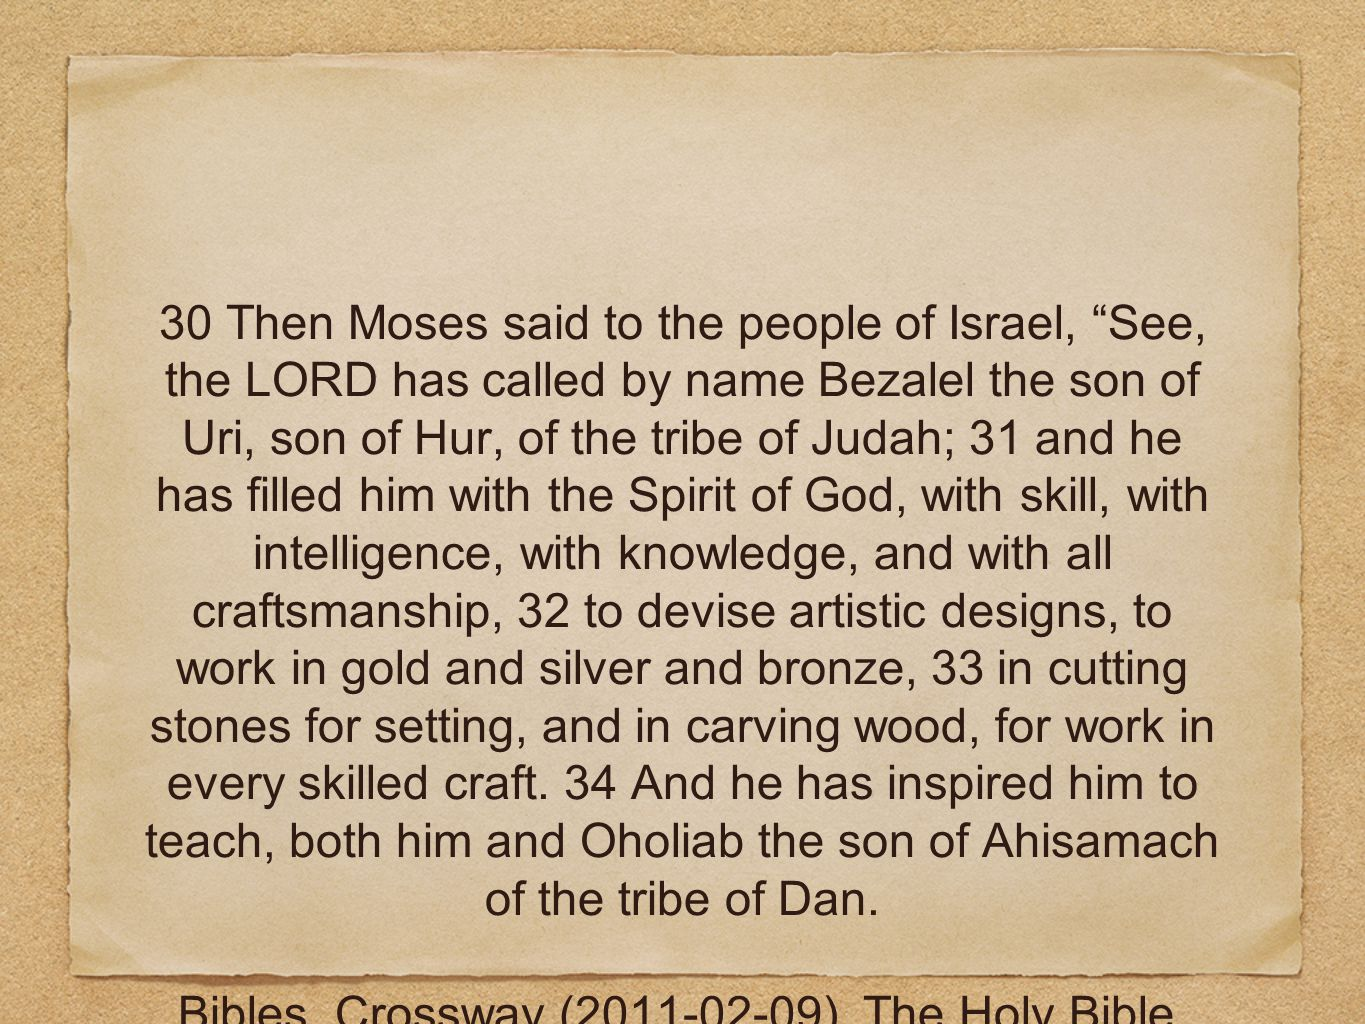 30 Then Moses said to the people of Israel, See, the LORD has called by name Bezalel the son of Uri, son of Hur, of the tribe of Judah; 31 and he has filled him with the Spirit of God, with skill, with intelligence, with knowledge, and with all craftsmanship, 32 to devise artistic designs, to work in gold and silver and bronze, 33 in cutting stones for setting, and in carving wood, for work in every skilled craft.